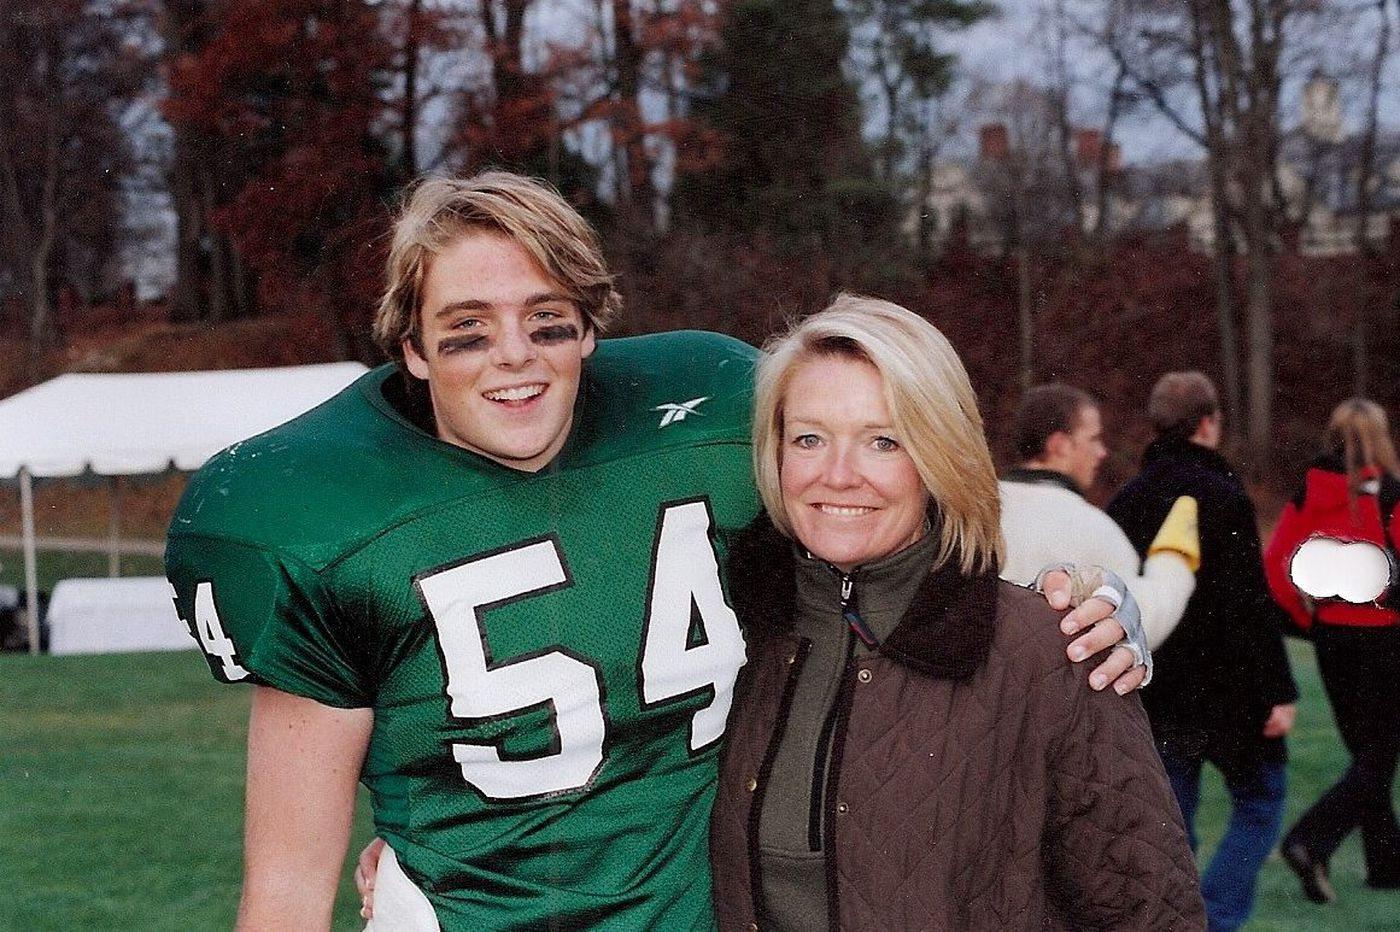 Parents whose children died take collective aim at hazing